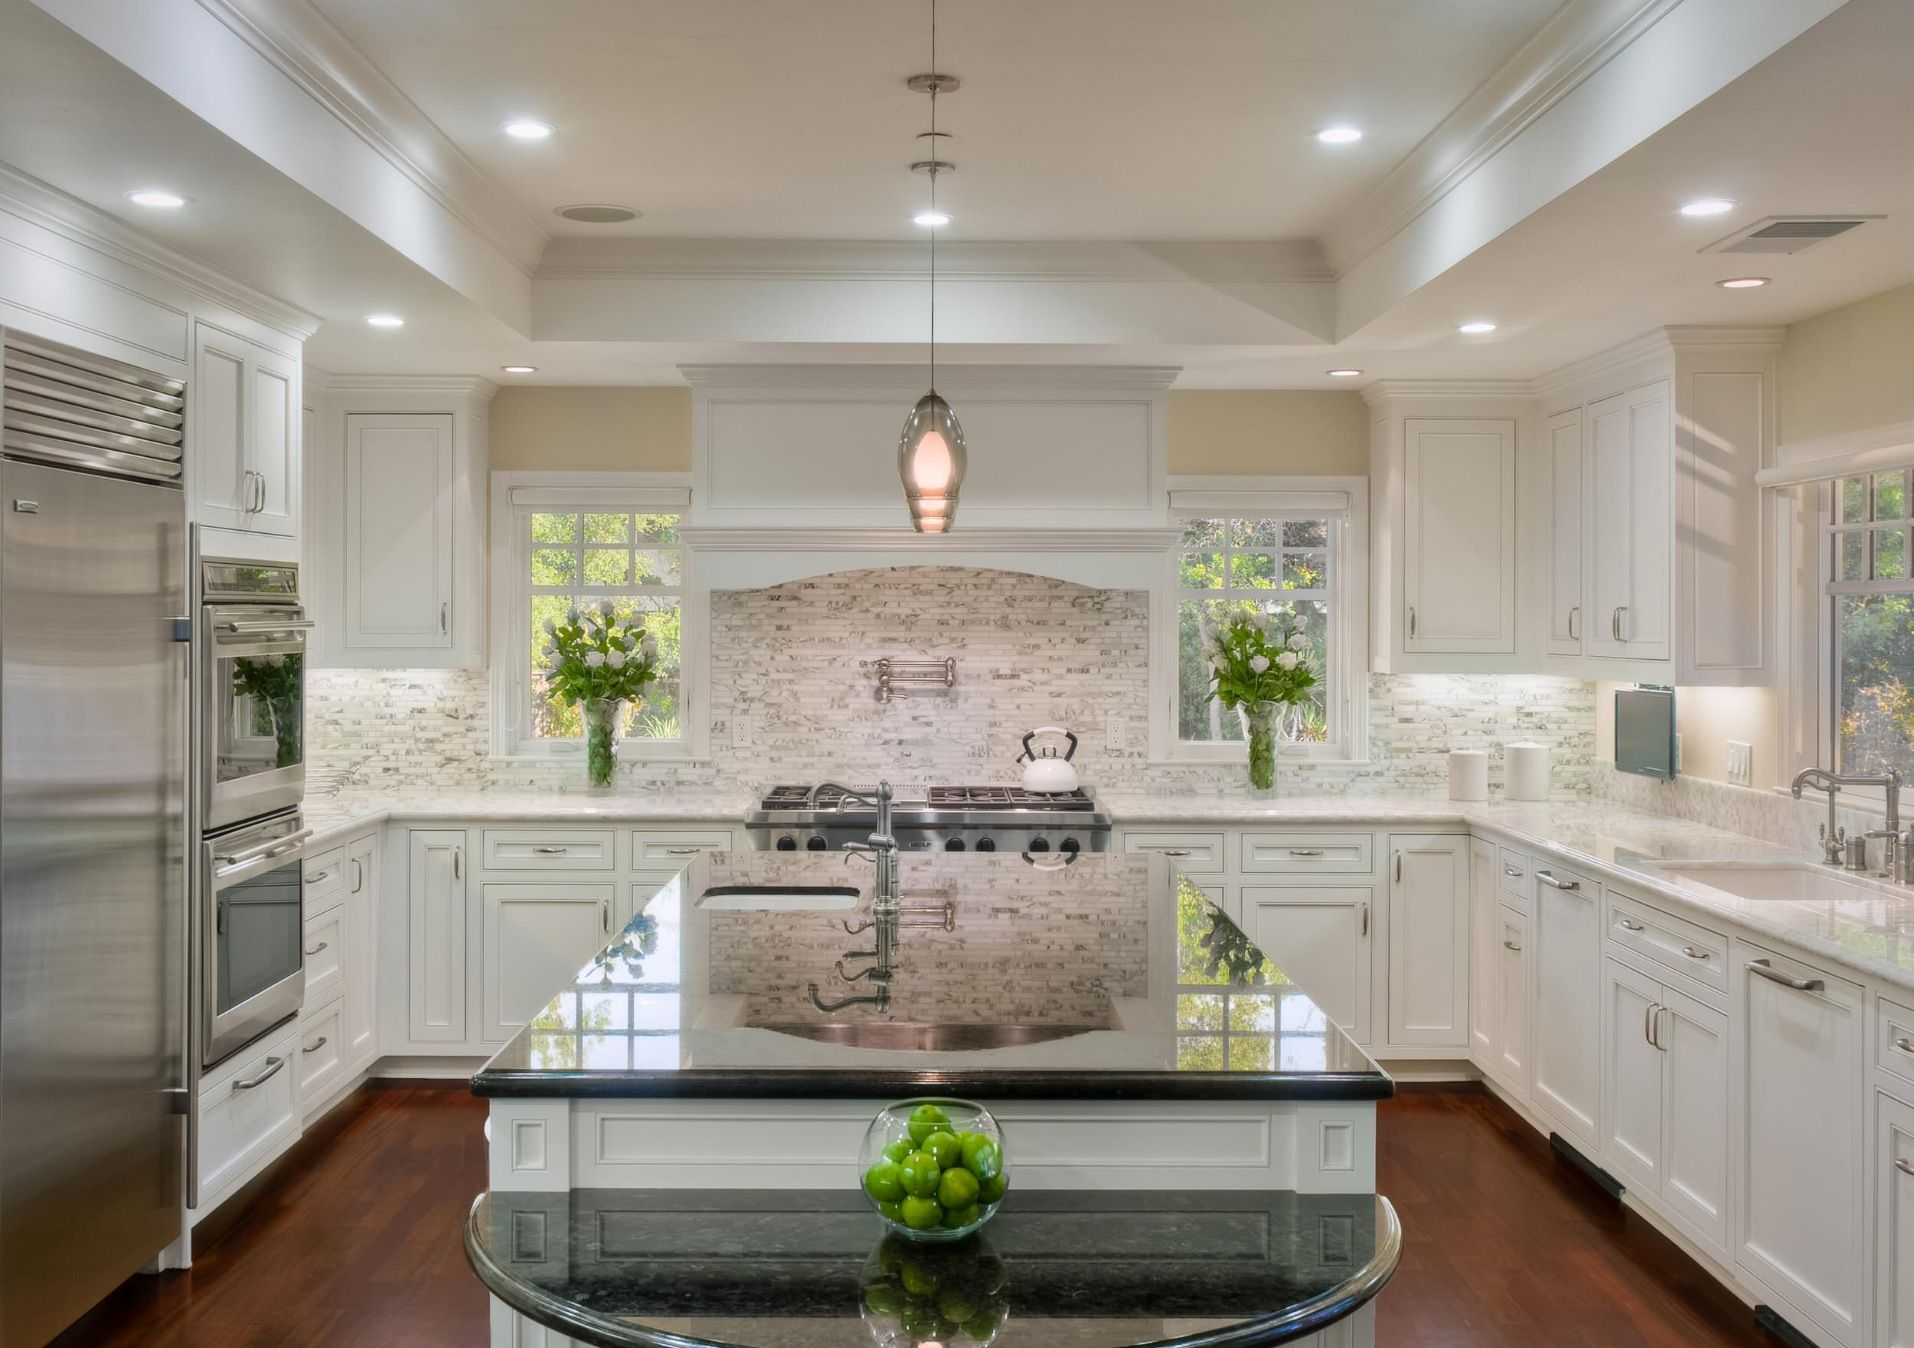 Best Kitchen Ceiling Ideas Lighting Ideas Traditional Kitchen With Exquisite